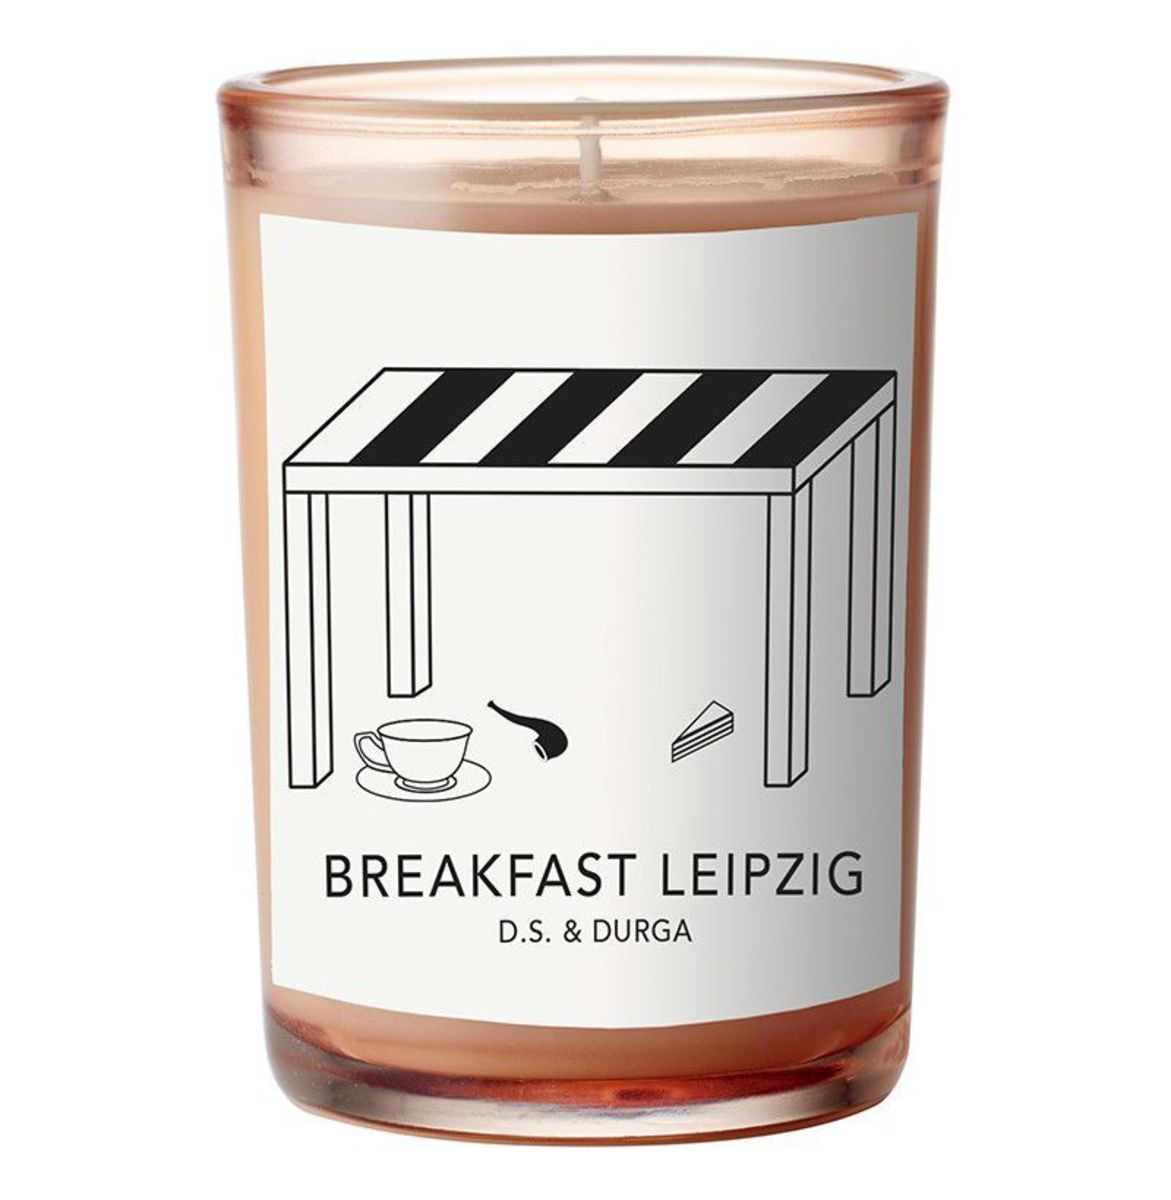 D.S. & Durga Breakfast Leipzig Candle, $65, available here. Photo: Courtesy of D.S. & Durga